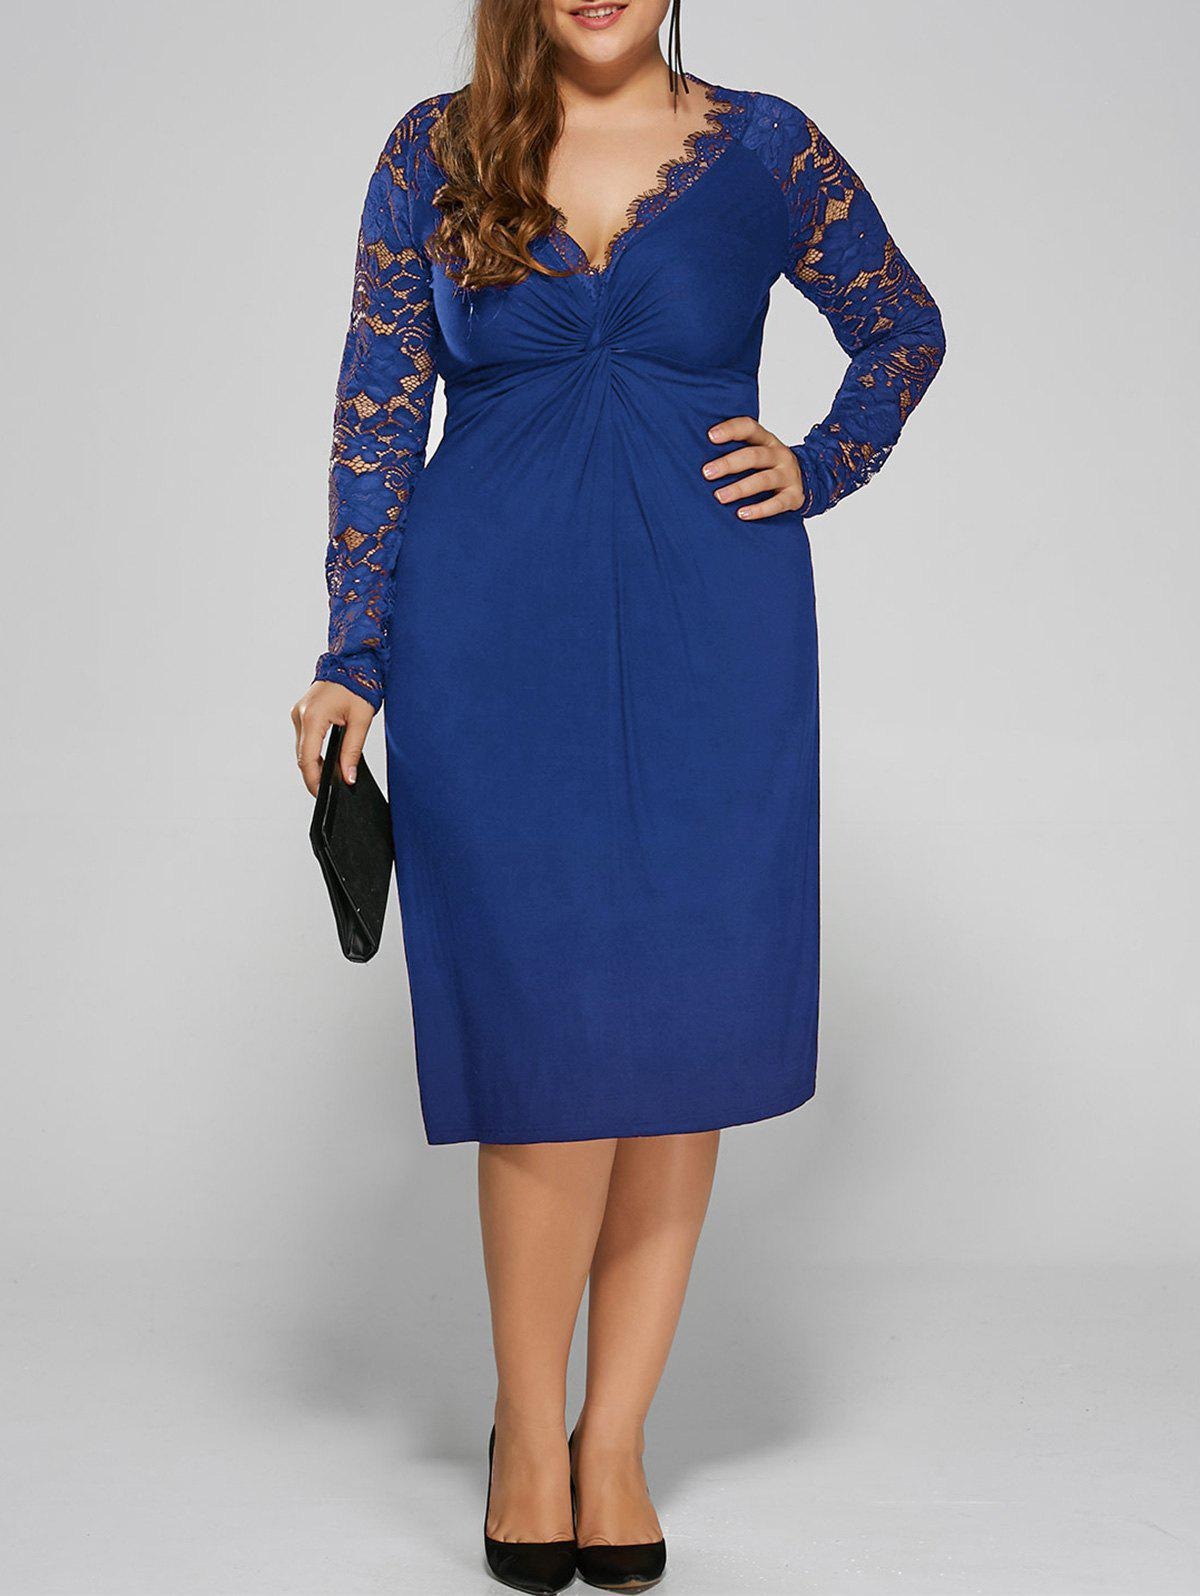 Plus Size Twist Front Lace Insert Fitted DressWOMEN<br><br>Size: 5XL; Color: BLUE; Style: Brief; Material: Polyester,Spandex; Silhouette: Straight; Dresses Length: Knee-Length; Neckline: Plunging Neck; Sleeve Length: Long Sleeves; Pattern Type: Floral; With Belt: No; Season: Fall,Spring; Weight: 0.3900kg; Package Contents: 1 x Dress;